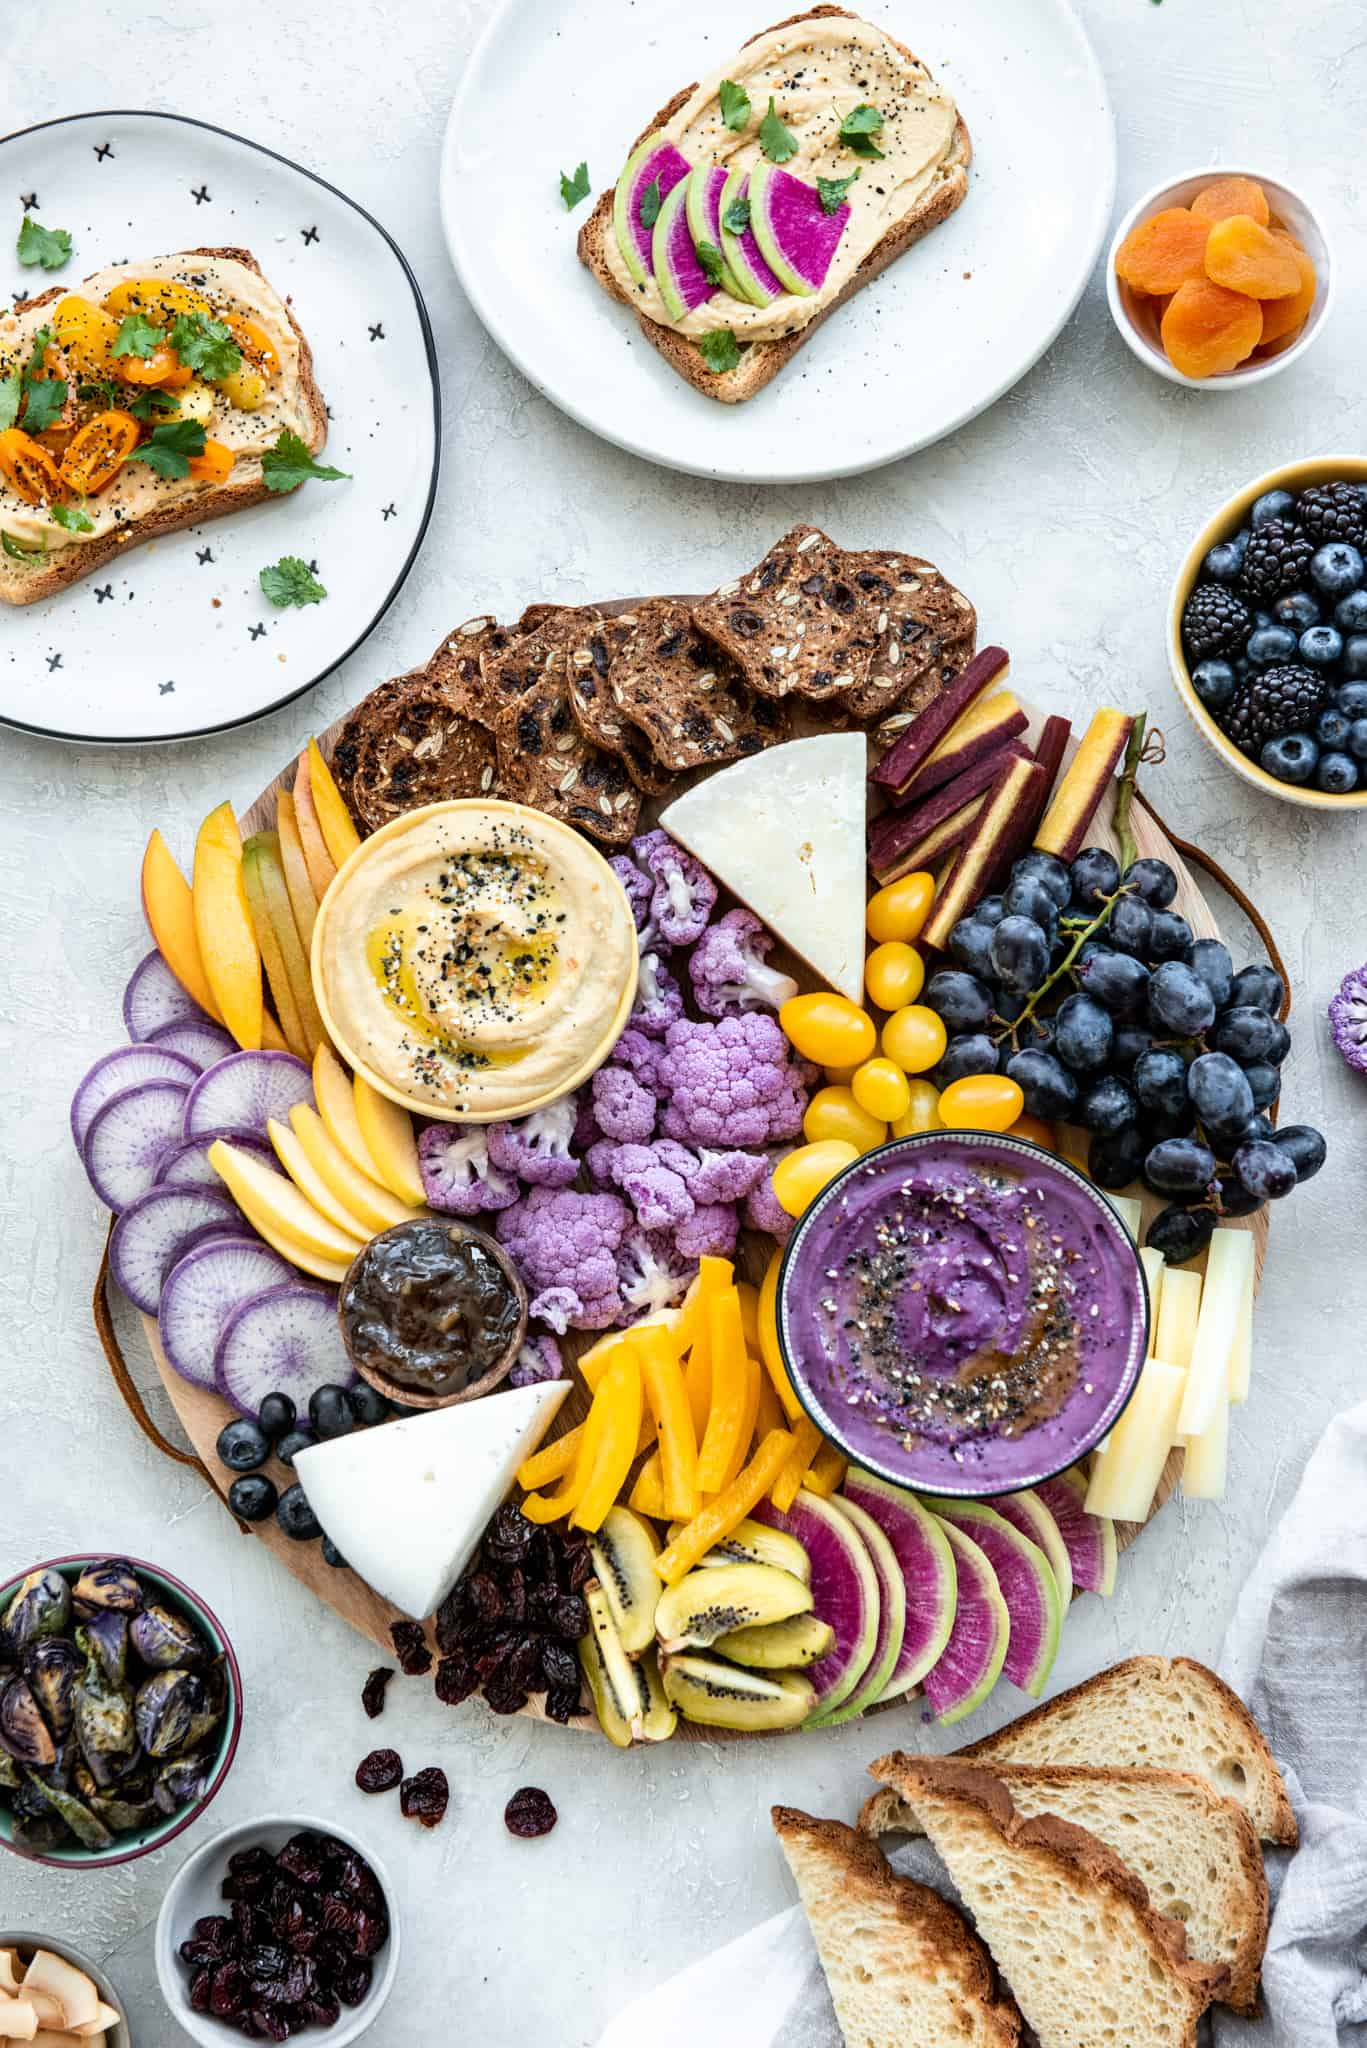 Overhead view of purple and yellow hummus appetizer platter on a gray background